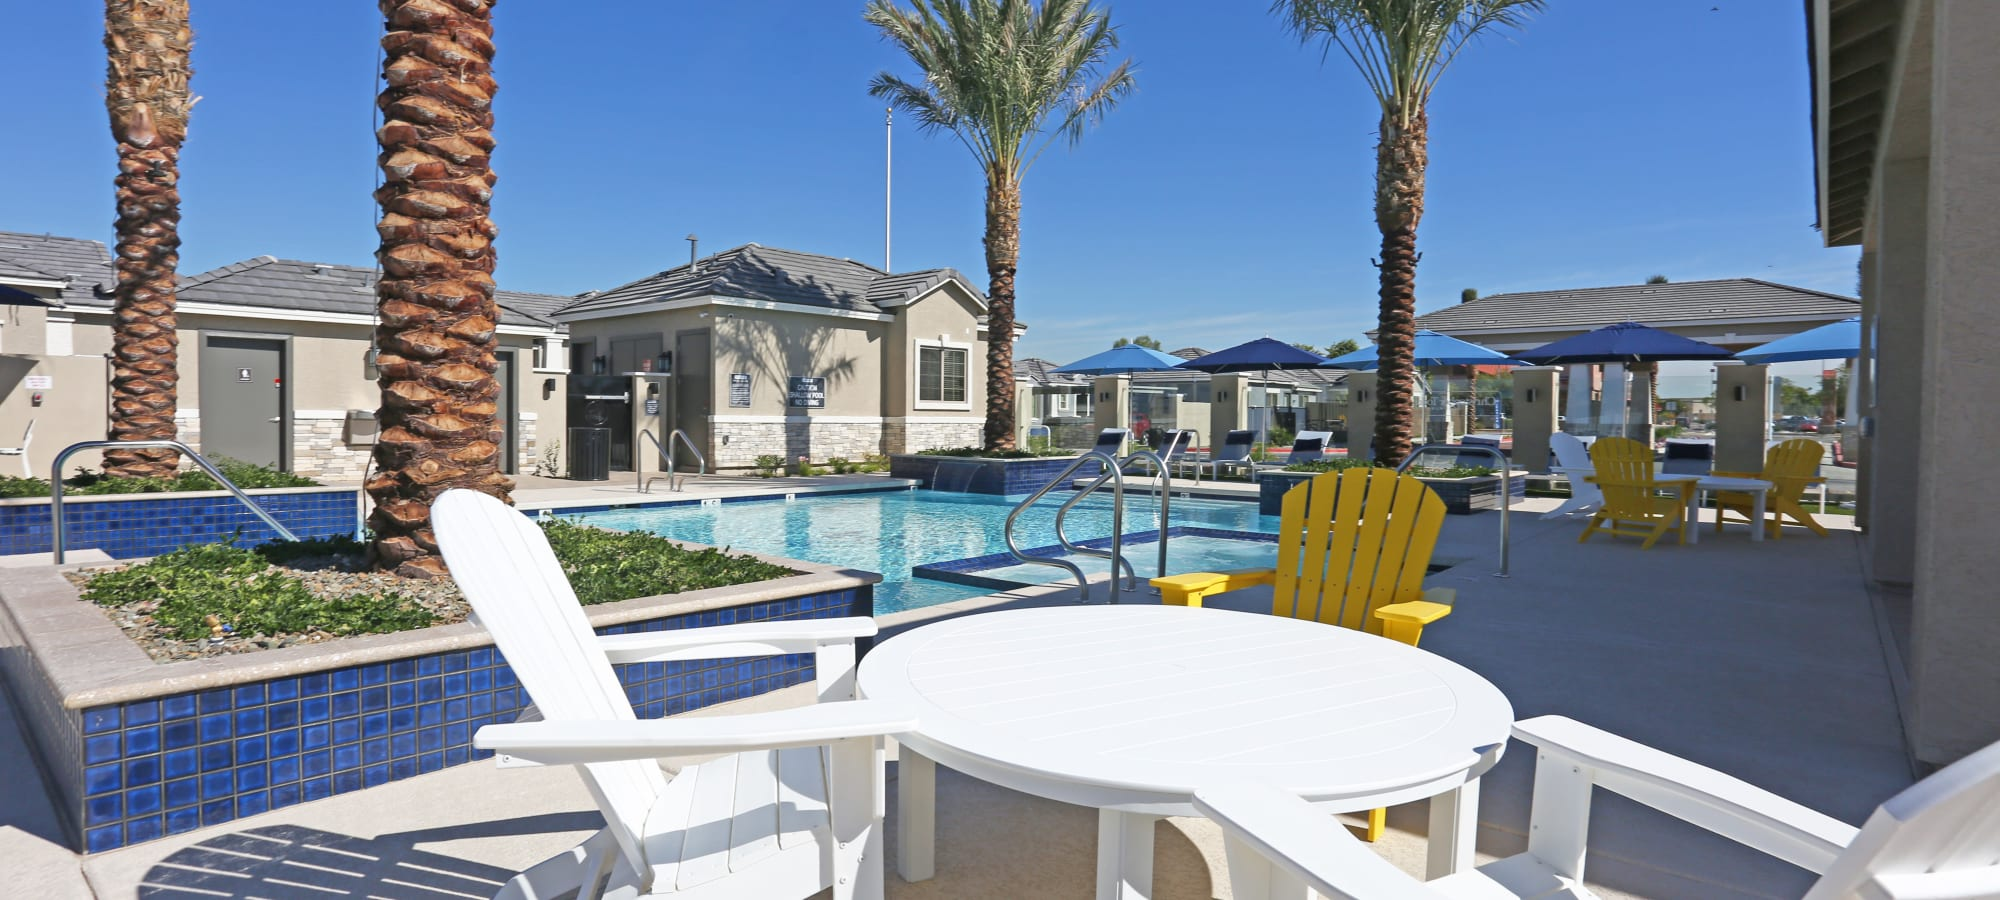 Comfortable seating near the pool at Christopher Todd Communities On Happy Valley in Peoria, Arizona